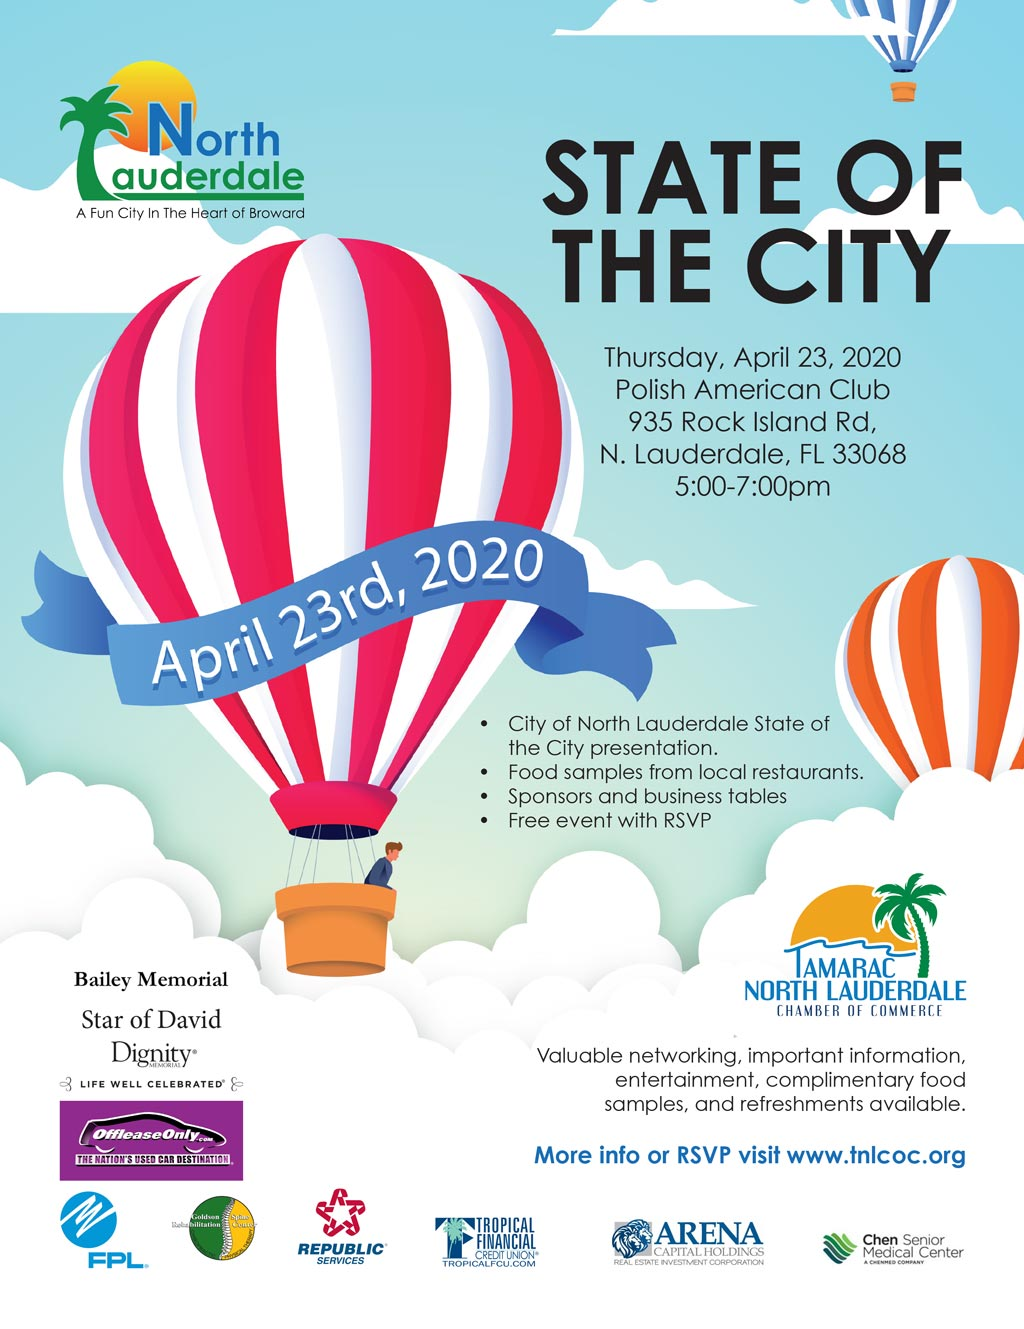 north lauderdale state of the city